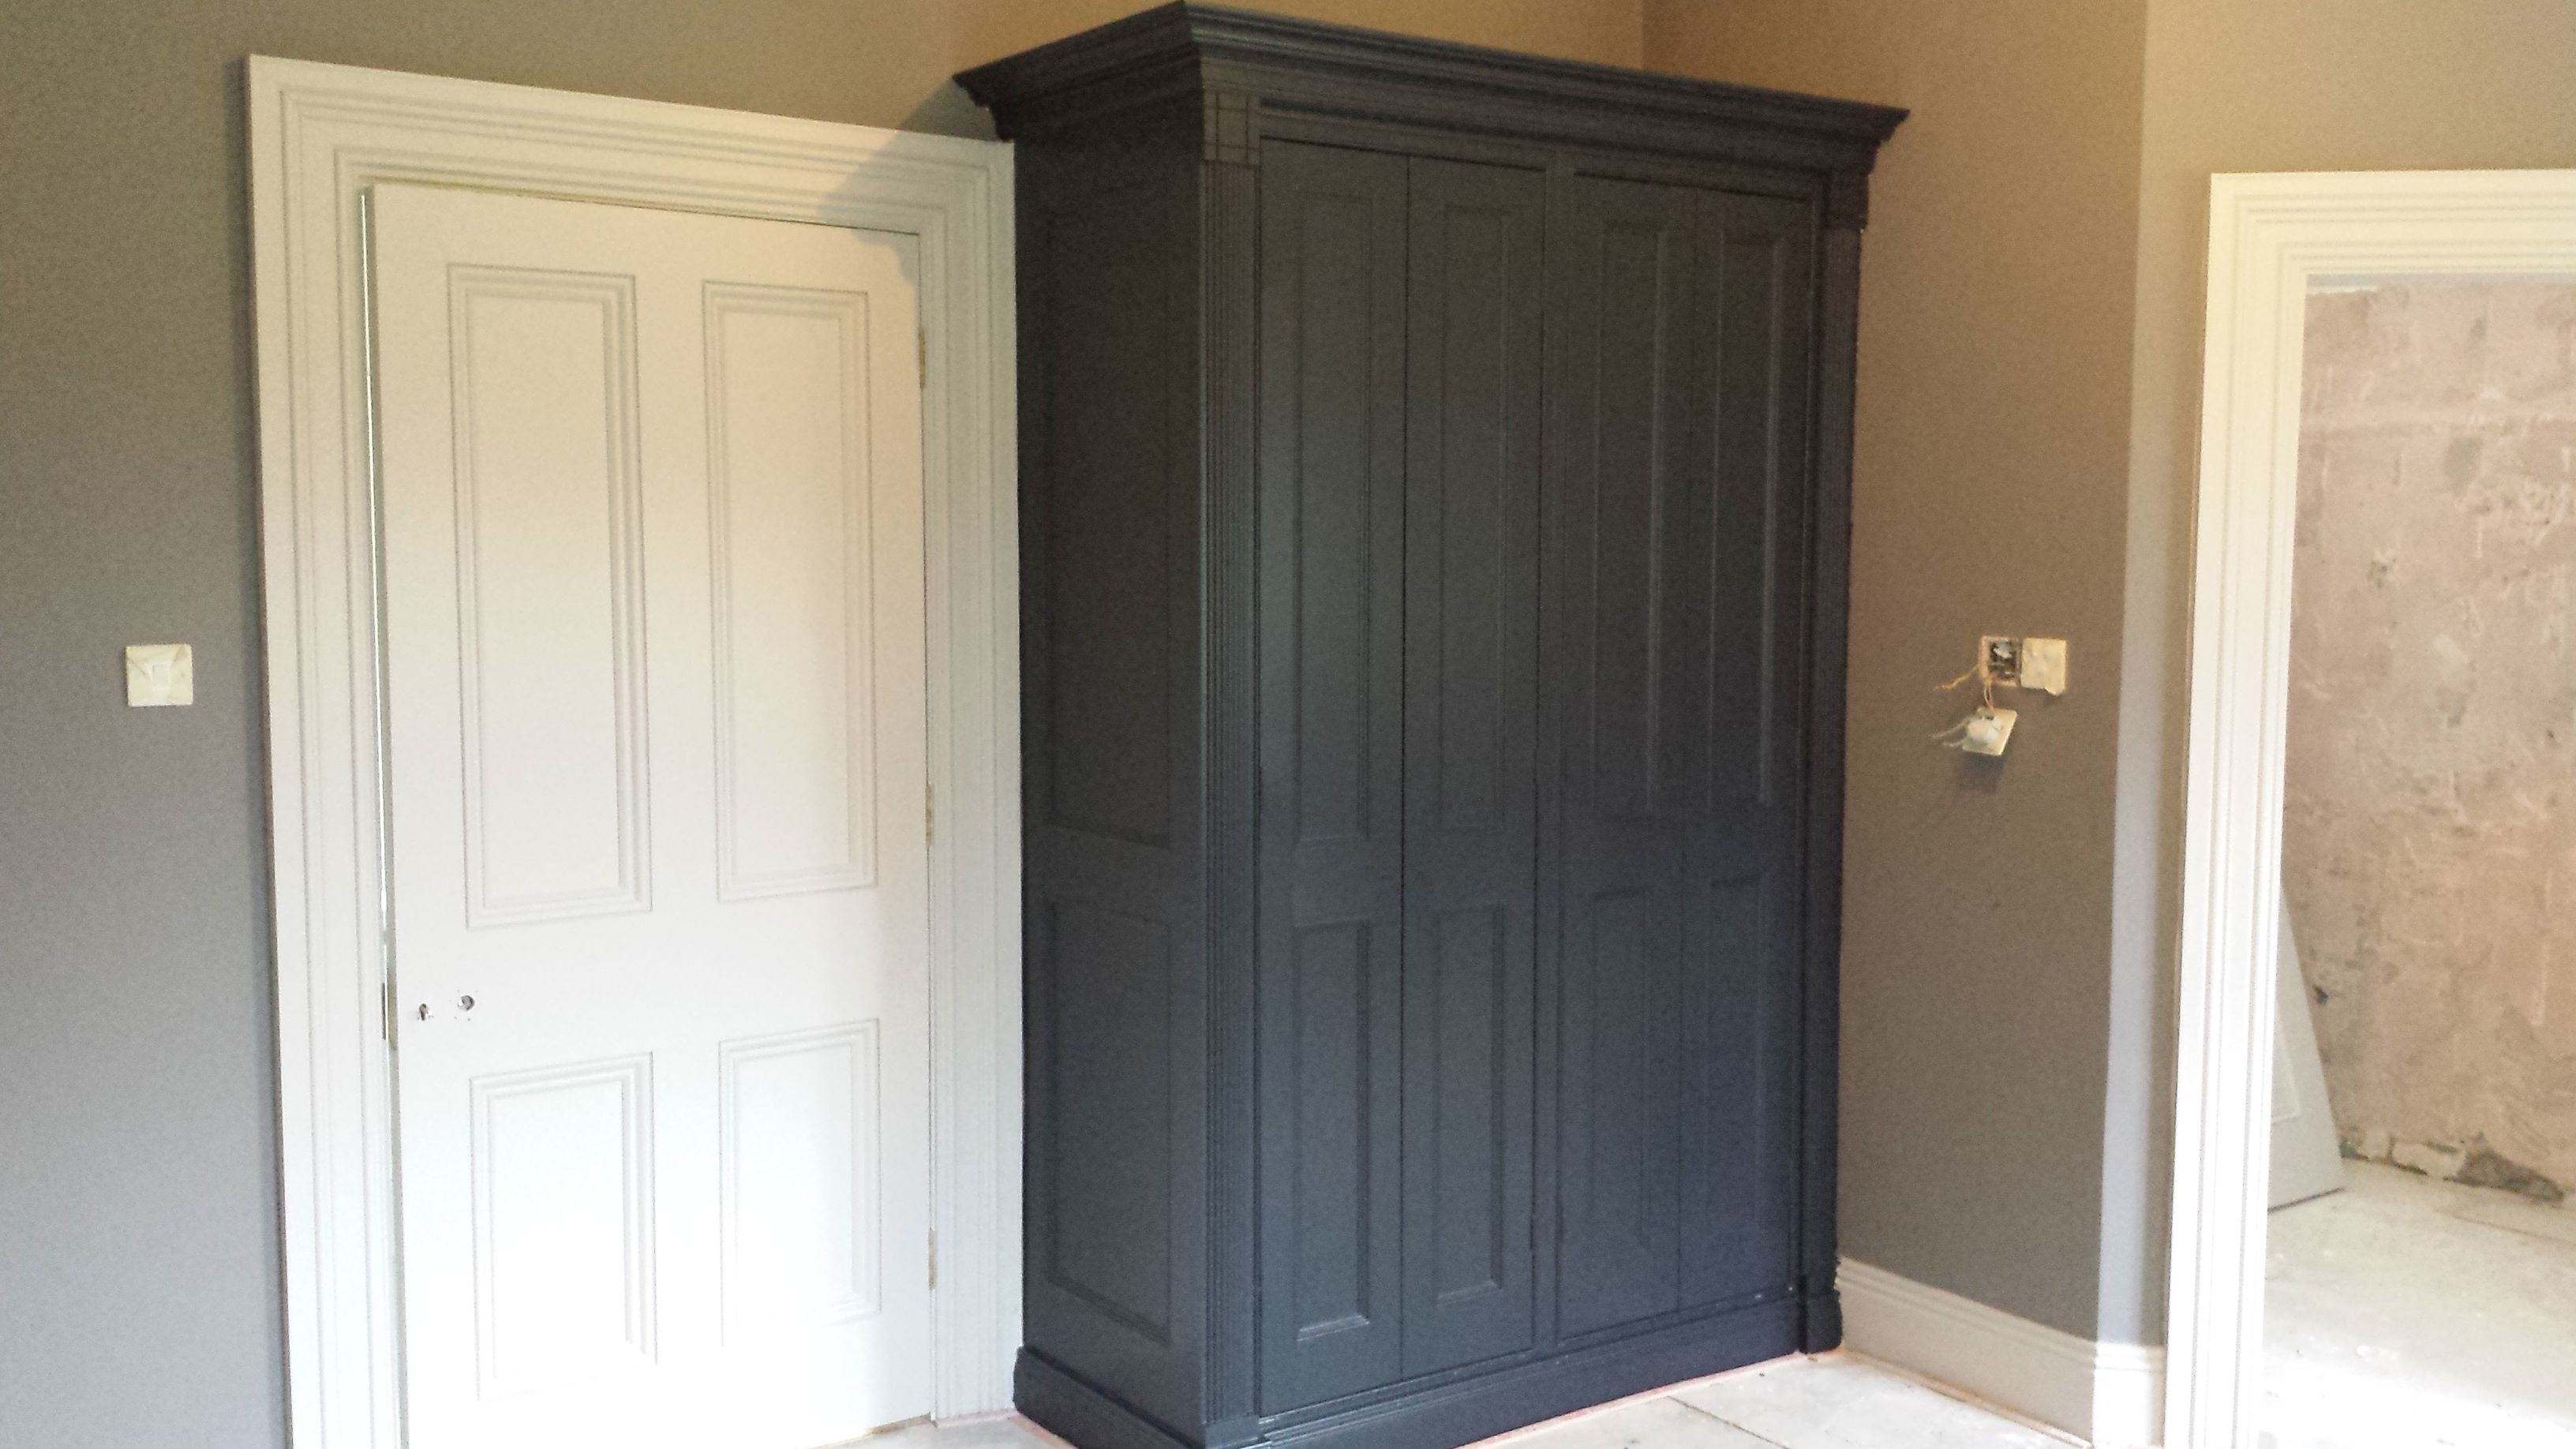 Wardrobe Painted With Farrow Ball Paint Colour Is Railings Small Bedroom Remodel Guest Bedroom Remodel Remodel Bedroom